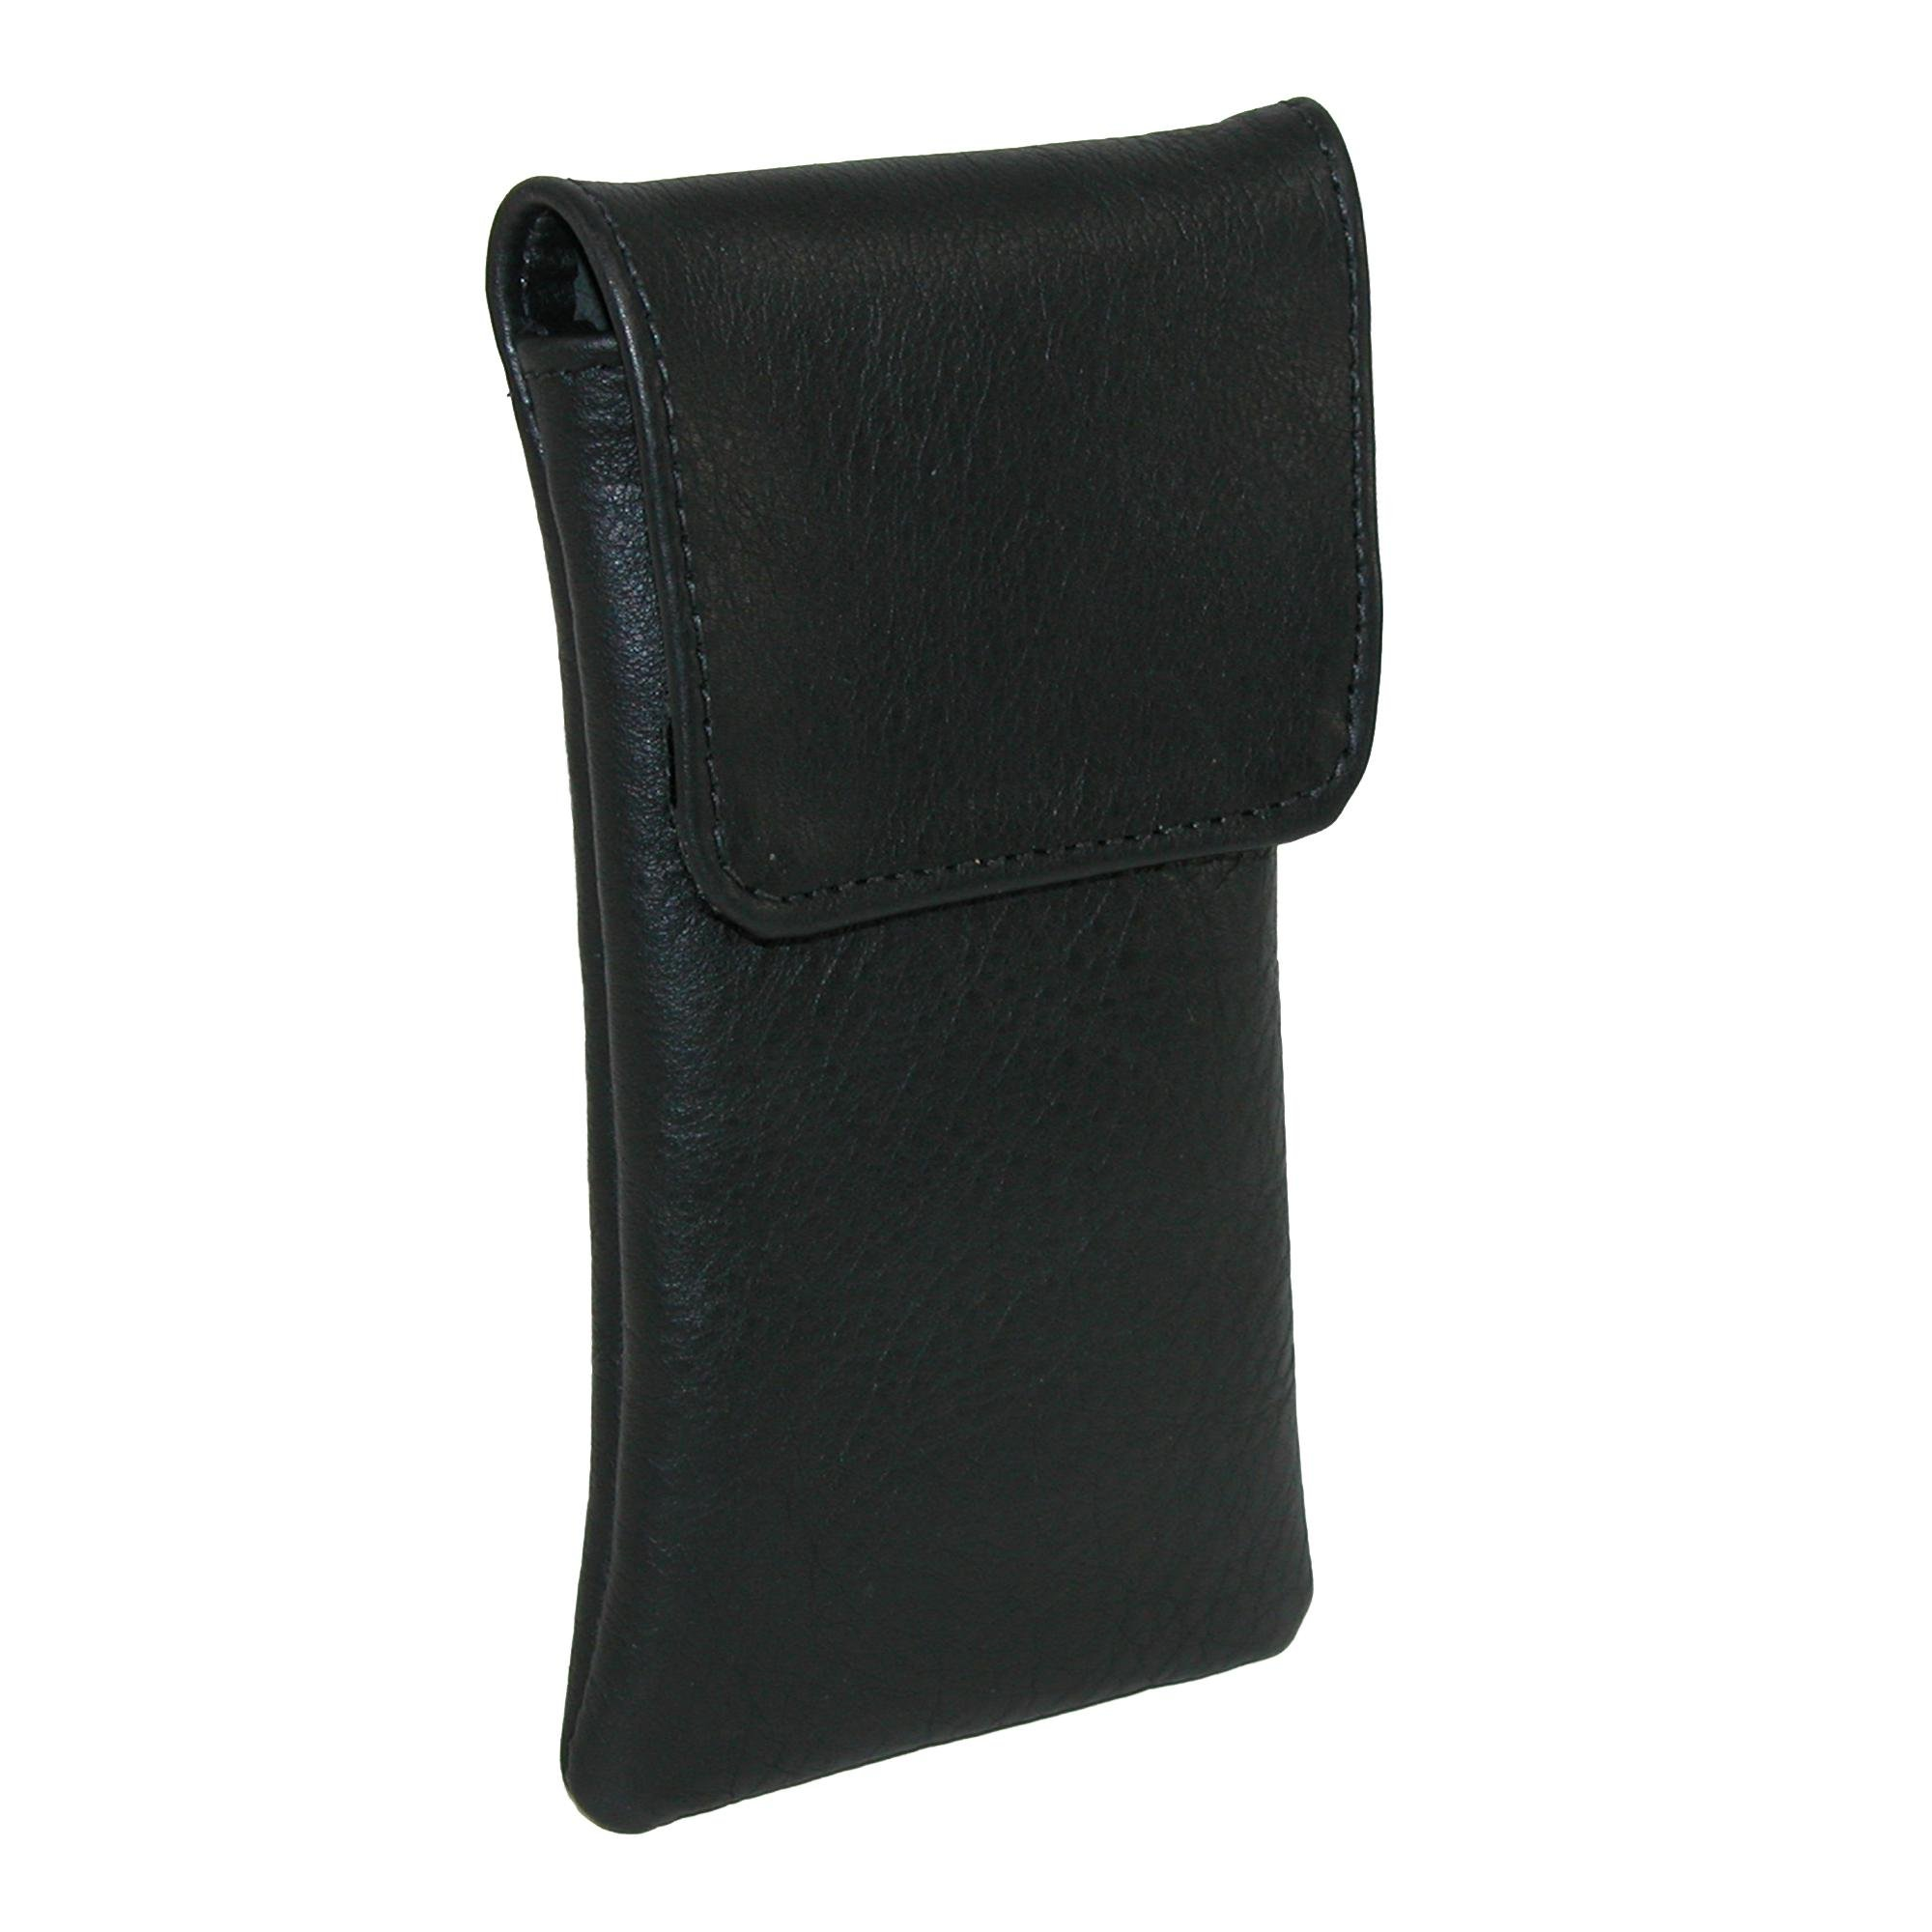 CTM Leather Soft Eyeglass Case with Holster Clip, Black by CTM